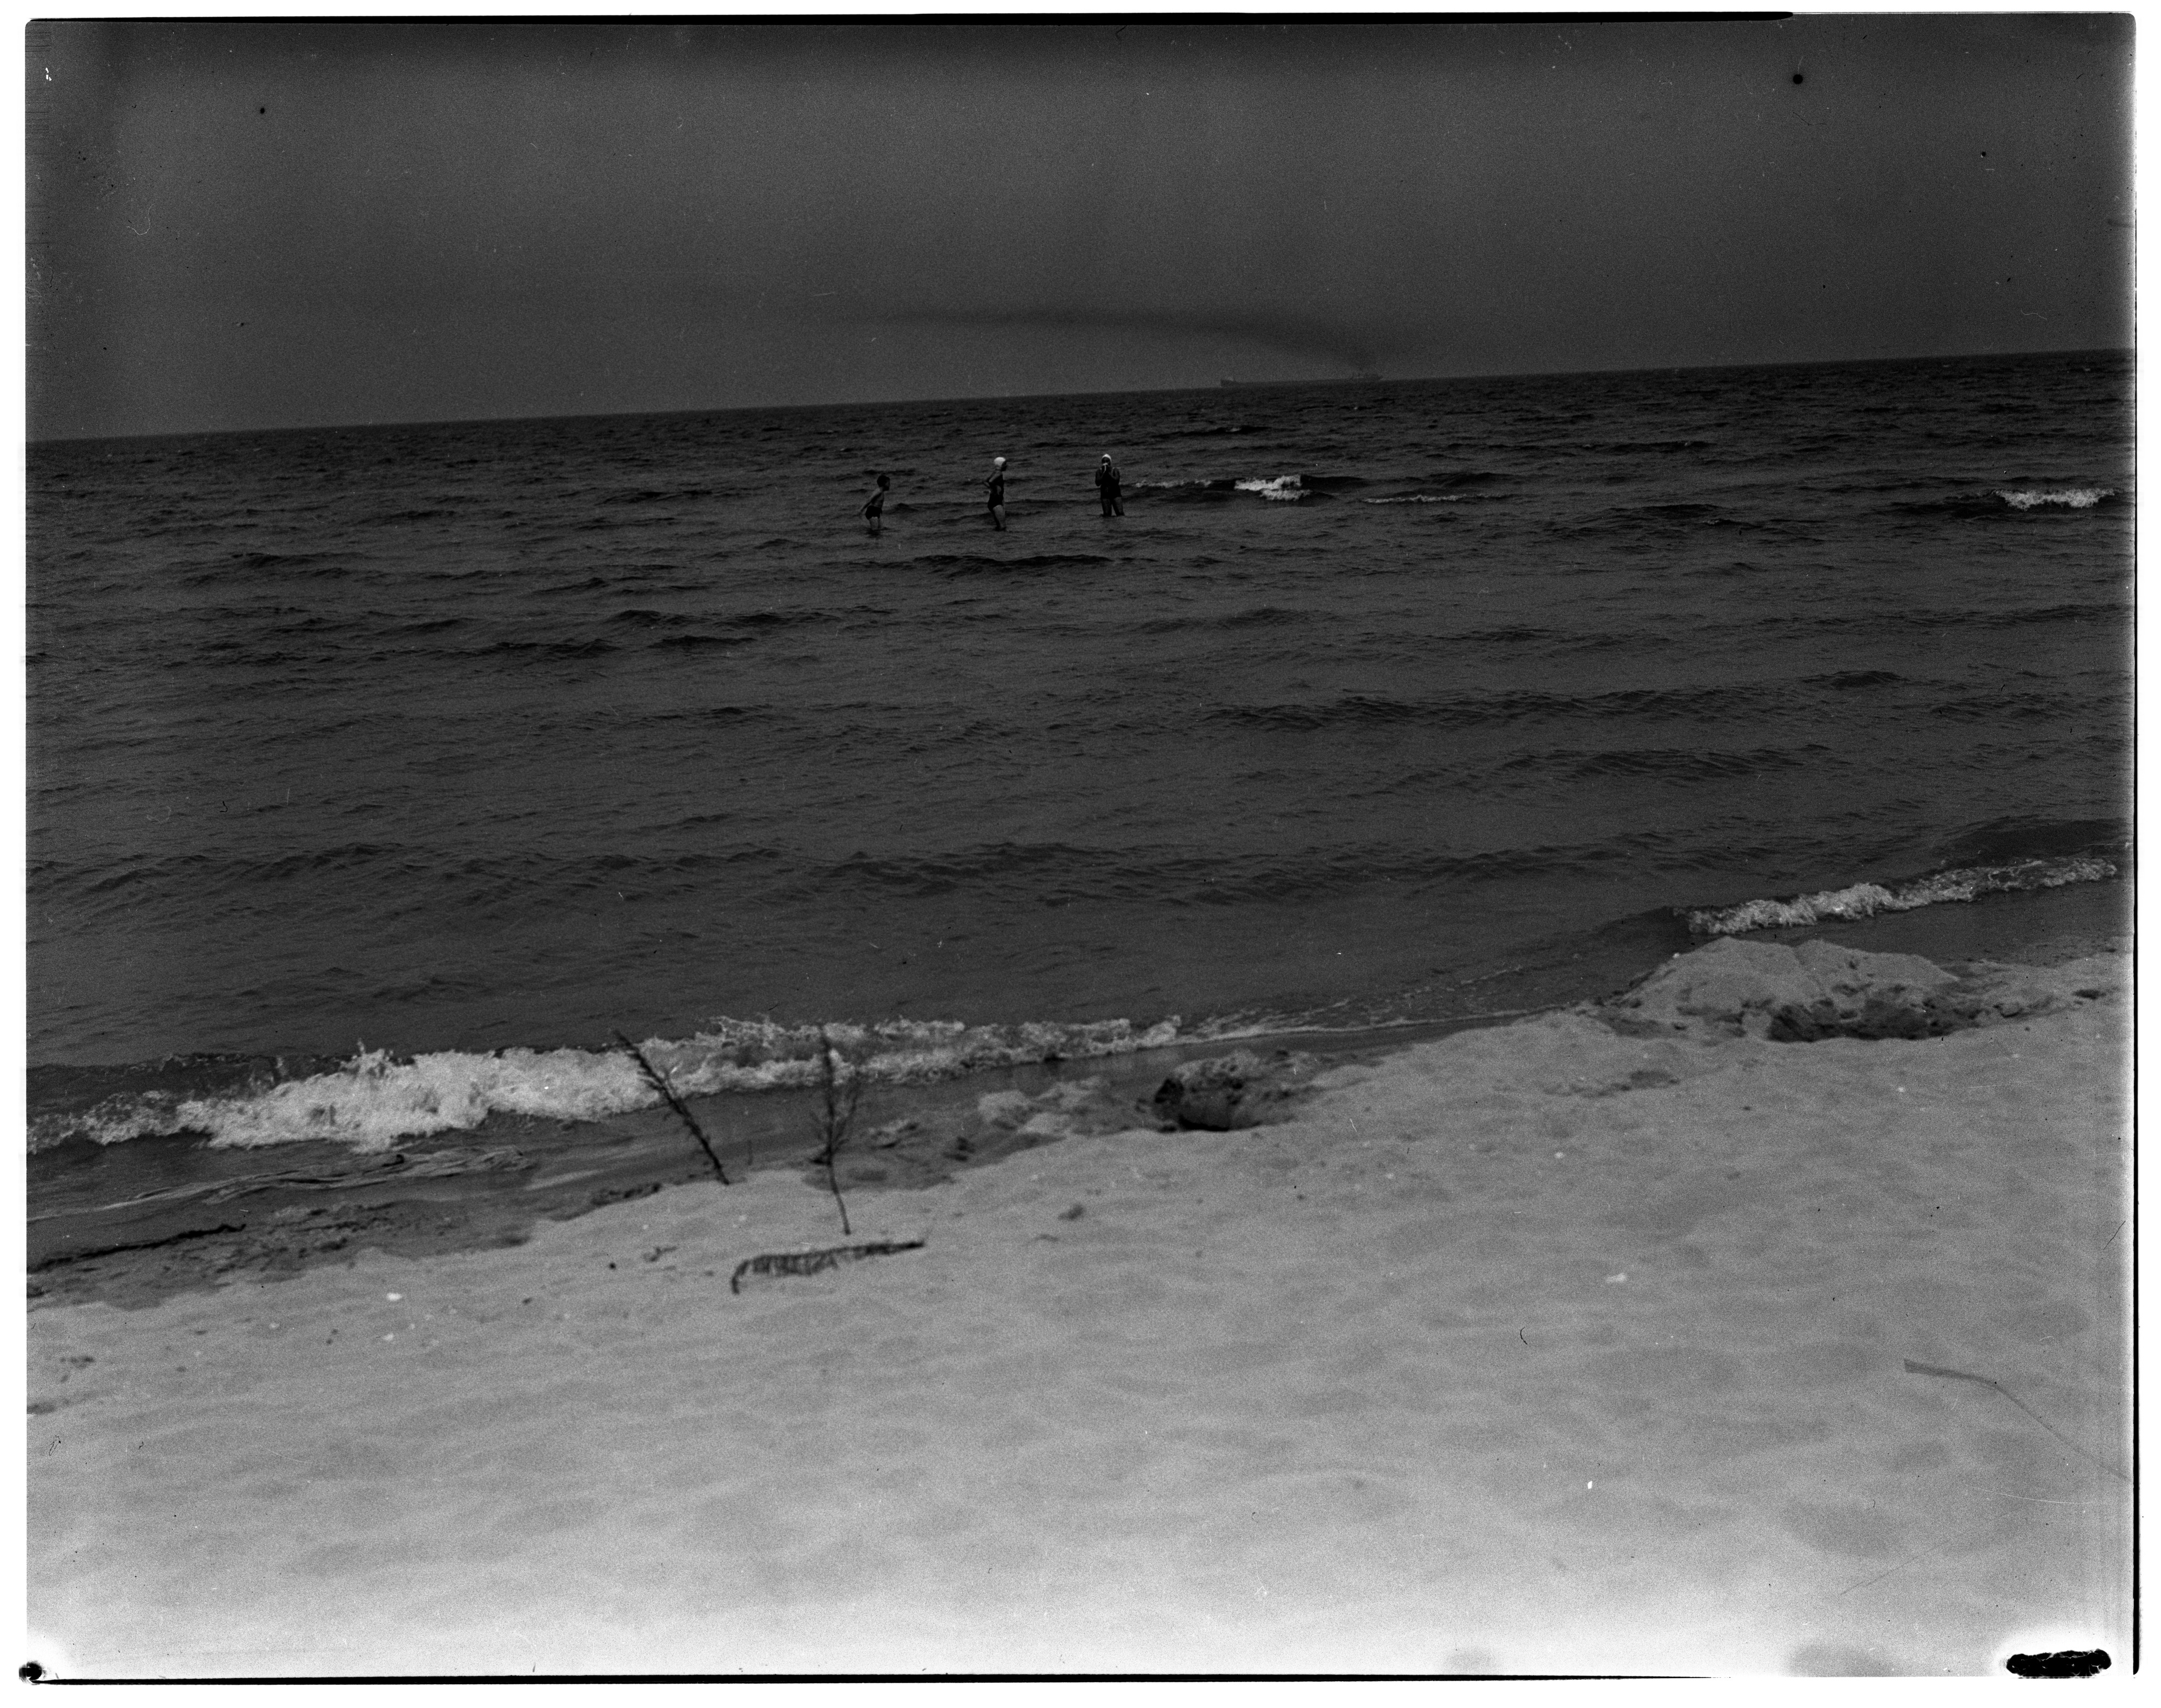 """Smoke Trails"", Bay City, MI to 40 Mile Point, MI  - Swimmers and Ship in Distance image"